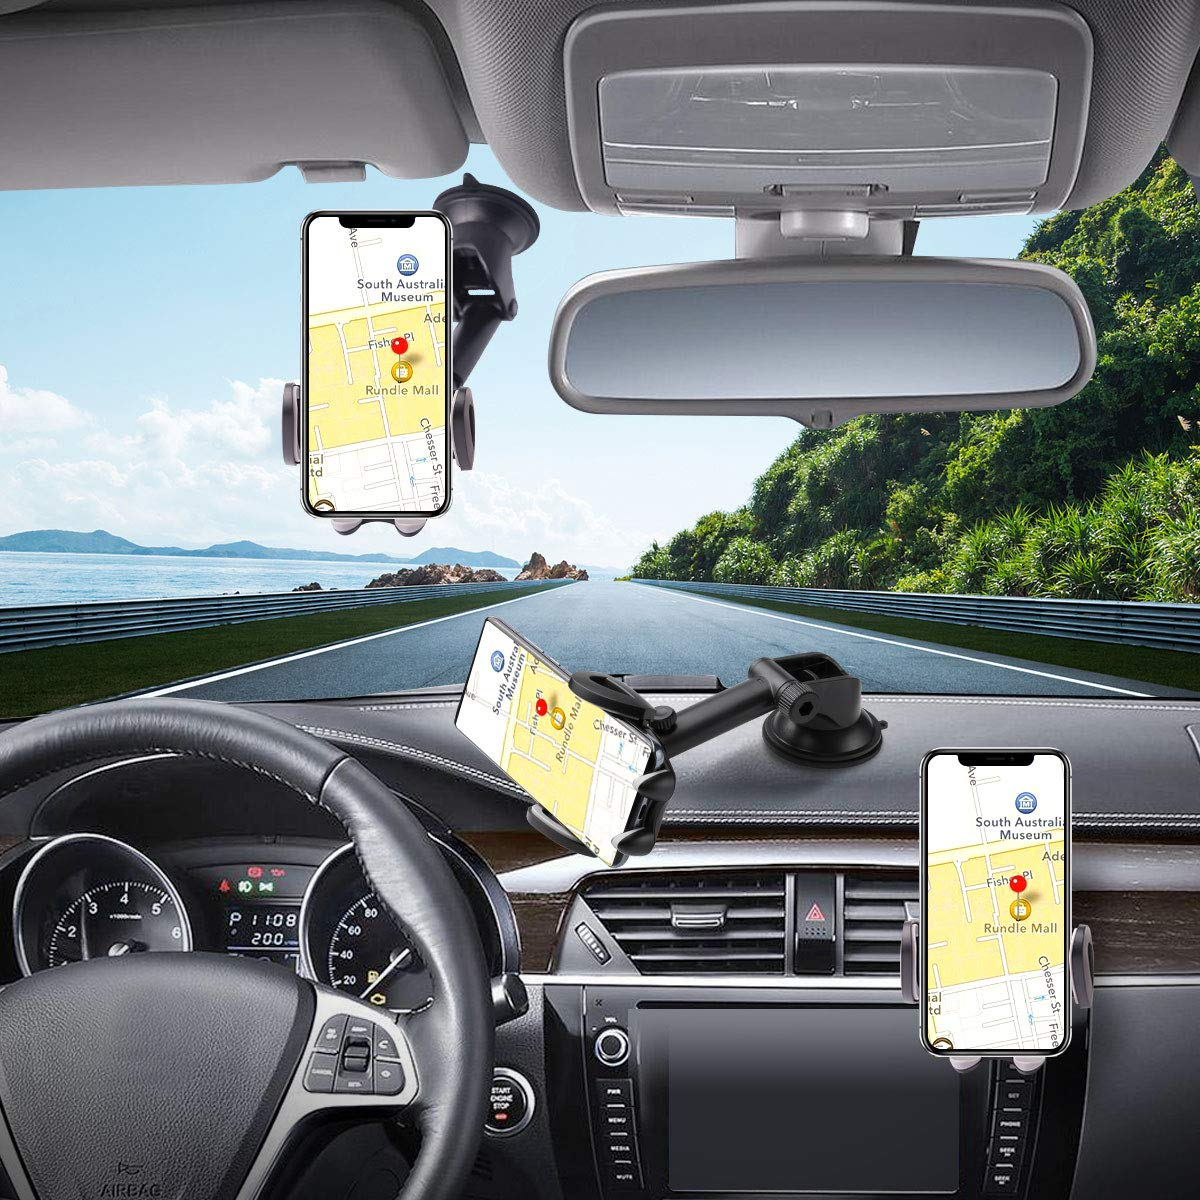 Car Cell Phone Holder Mount, Hapfish Universal Phone Holder for Car Dash Vent Windshield, Hands Free Easy Clamp Super Suction Stand for iPhone 12 11 Pro XS Max XR X 8 7 6, Galaxy Note, Mobile Phones